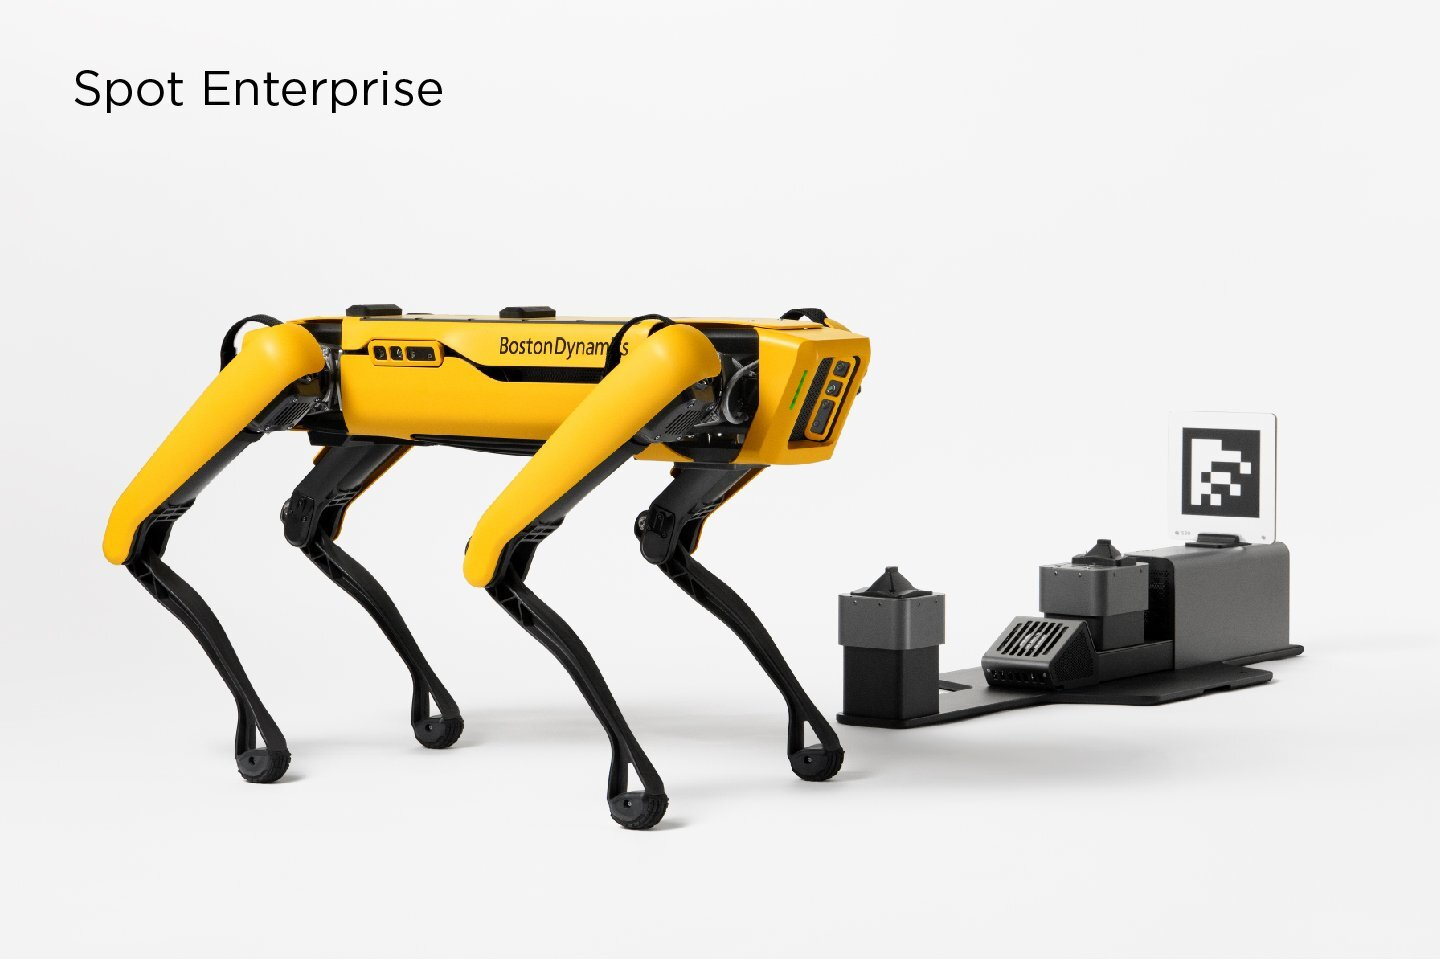 [VIDEOS] Spot Robot Dog Adds Self Charging, Remote Operation, and Arm